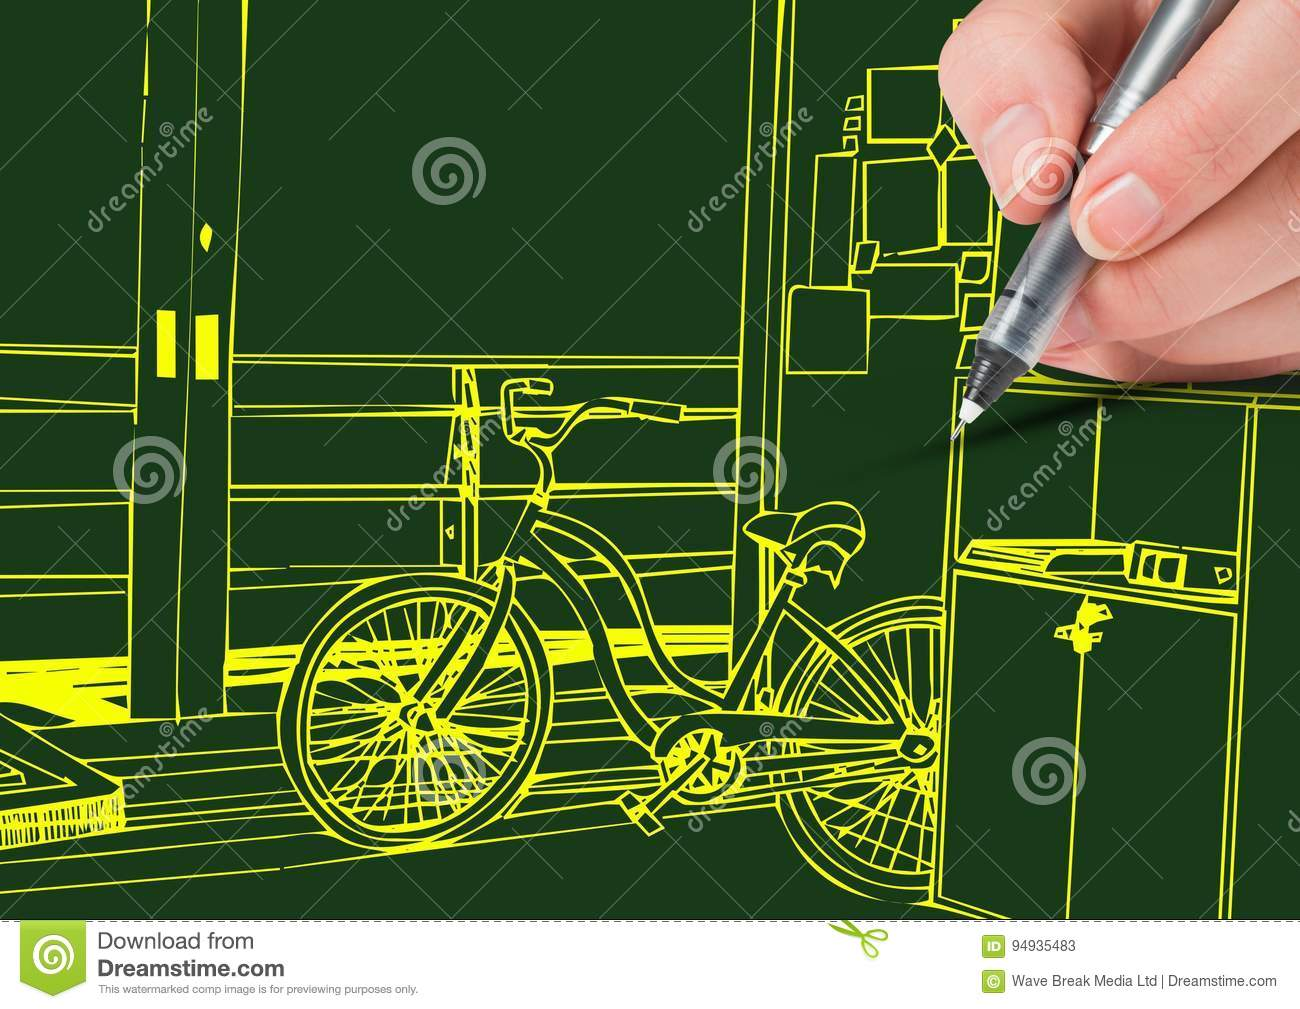 Drawing Lines In Office : Hand drawing office yellow lines on green background stock